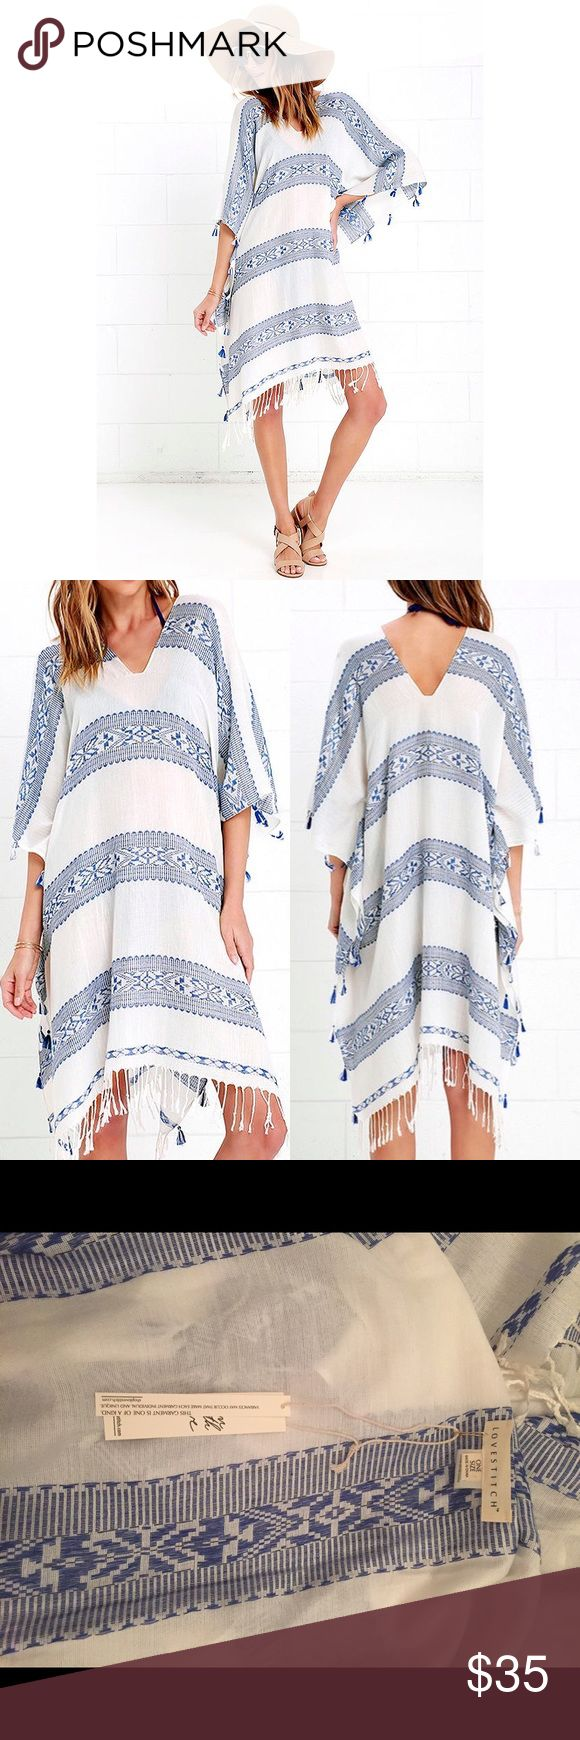 """BLUE AND IVORY KAFTAN COVER-UP NWT NWT NEVER WORN▫️Blue woven stripes, in a southwestern design, decorate a flowy kaftan cover-up with tassel and fringe accents along the hems. Fringe measures 3"""" at bottom. 50% Viscose, 50% Polyester. Fit: This garment fits true to size. Length: Knee to mid-calf length. Size one size measures 37"""" from shoulder to hem. Bust: Great for any cup size. Waist: Not Fitted - comfortable room throughout midsection. Hip: Not Fitted - room for hips. Lulu's Swim…"""